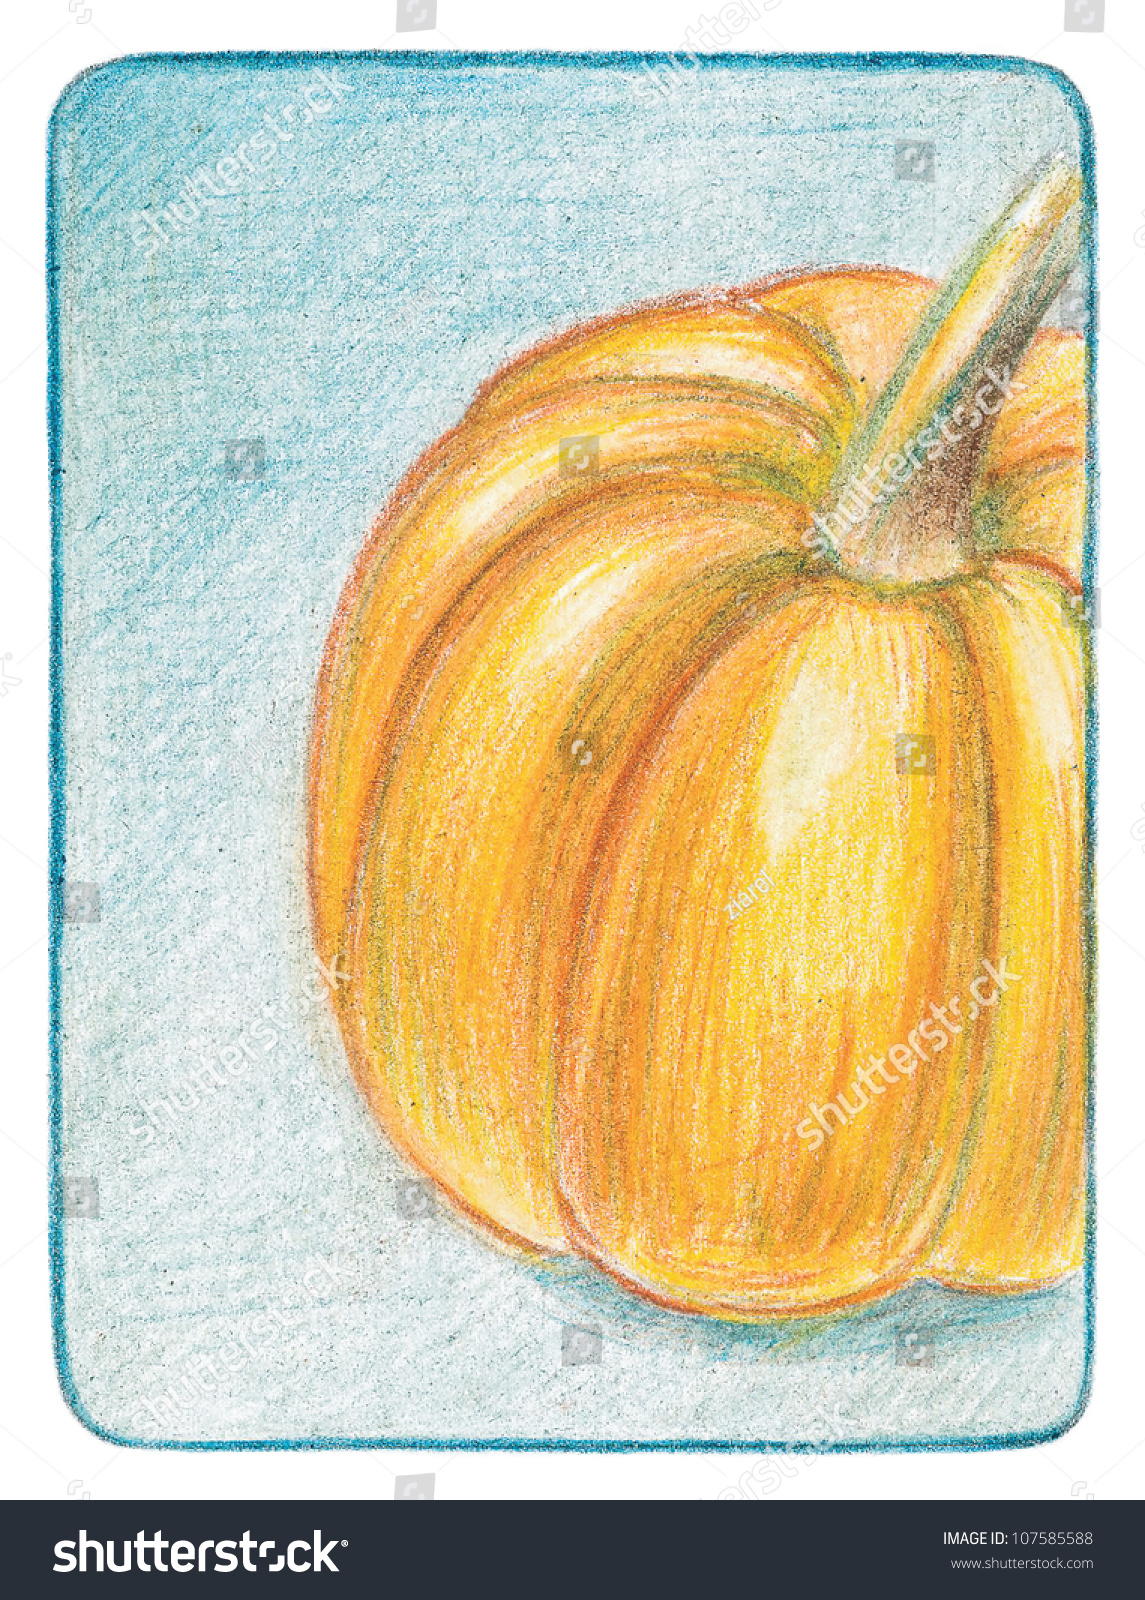 How To Draw A Orange step by step with pencil marker easy